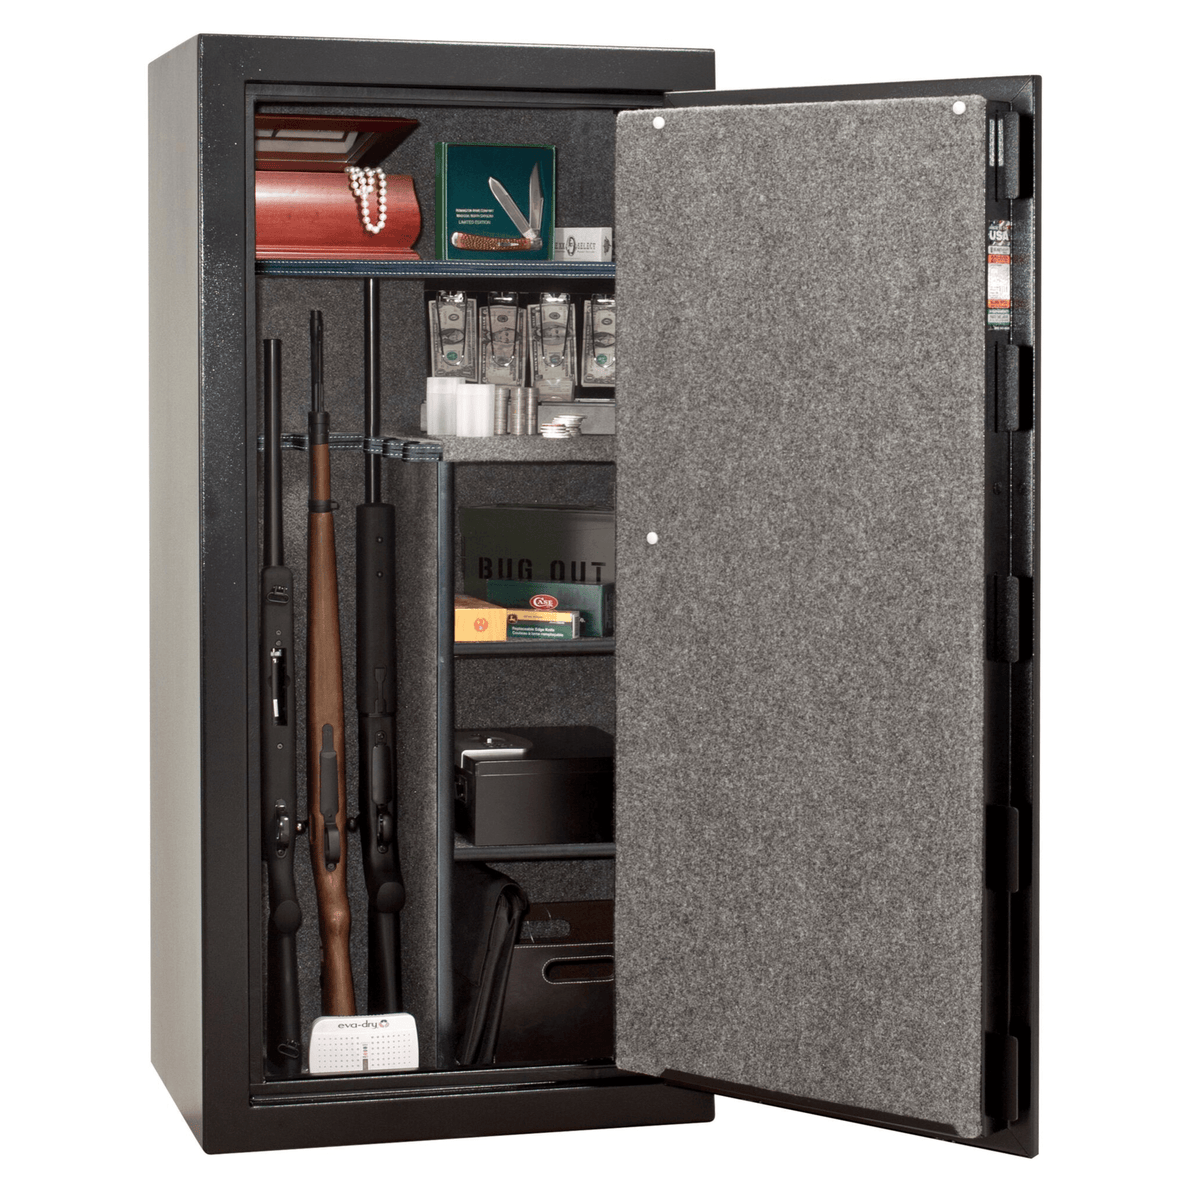 "Centurion | 24 | Level 1 Security | 30 Minute Fire Protection | Black | Black Electronic Lock | 59.5""(H) x 28.25""(W) x 22""(D)"